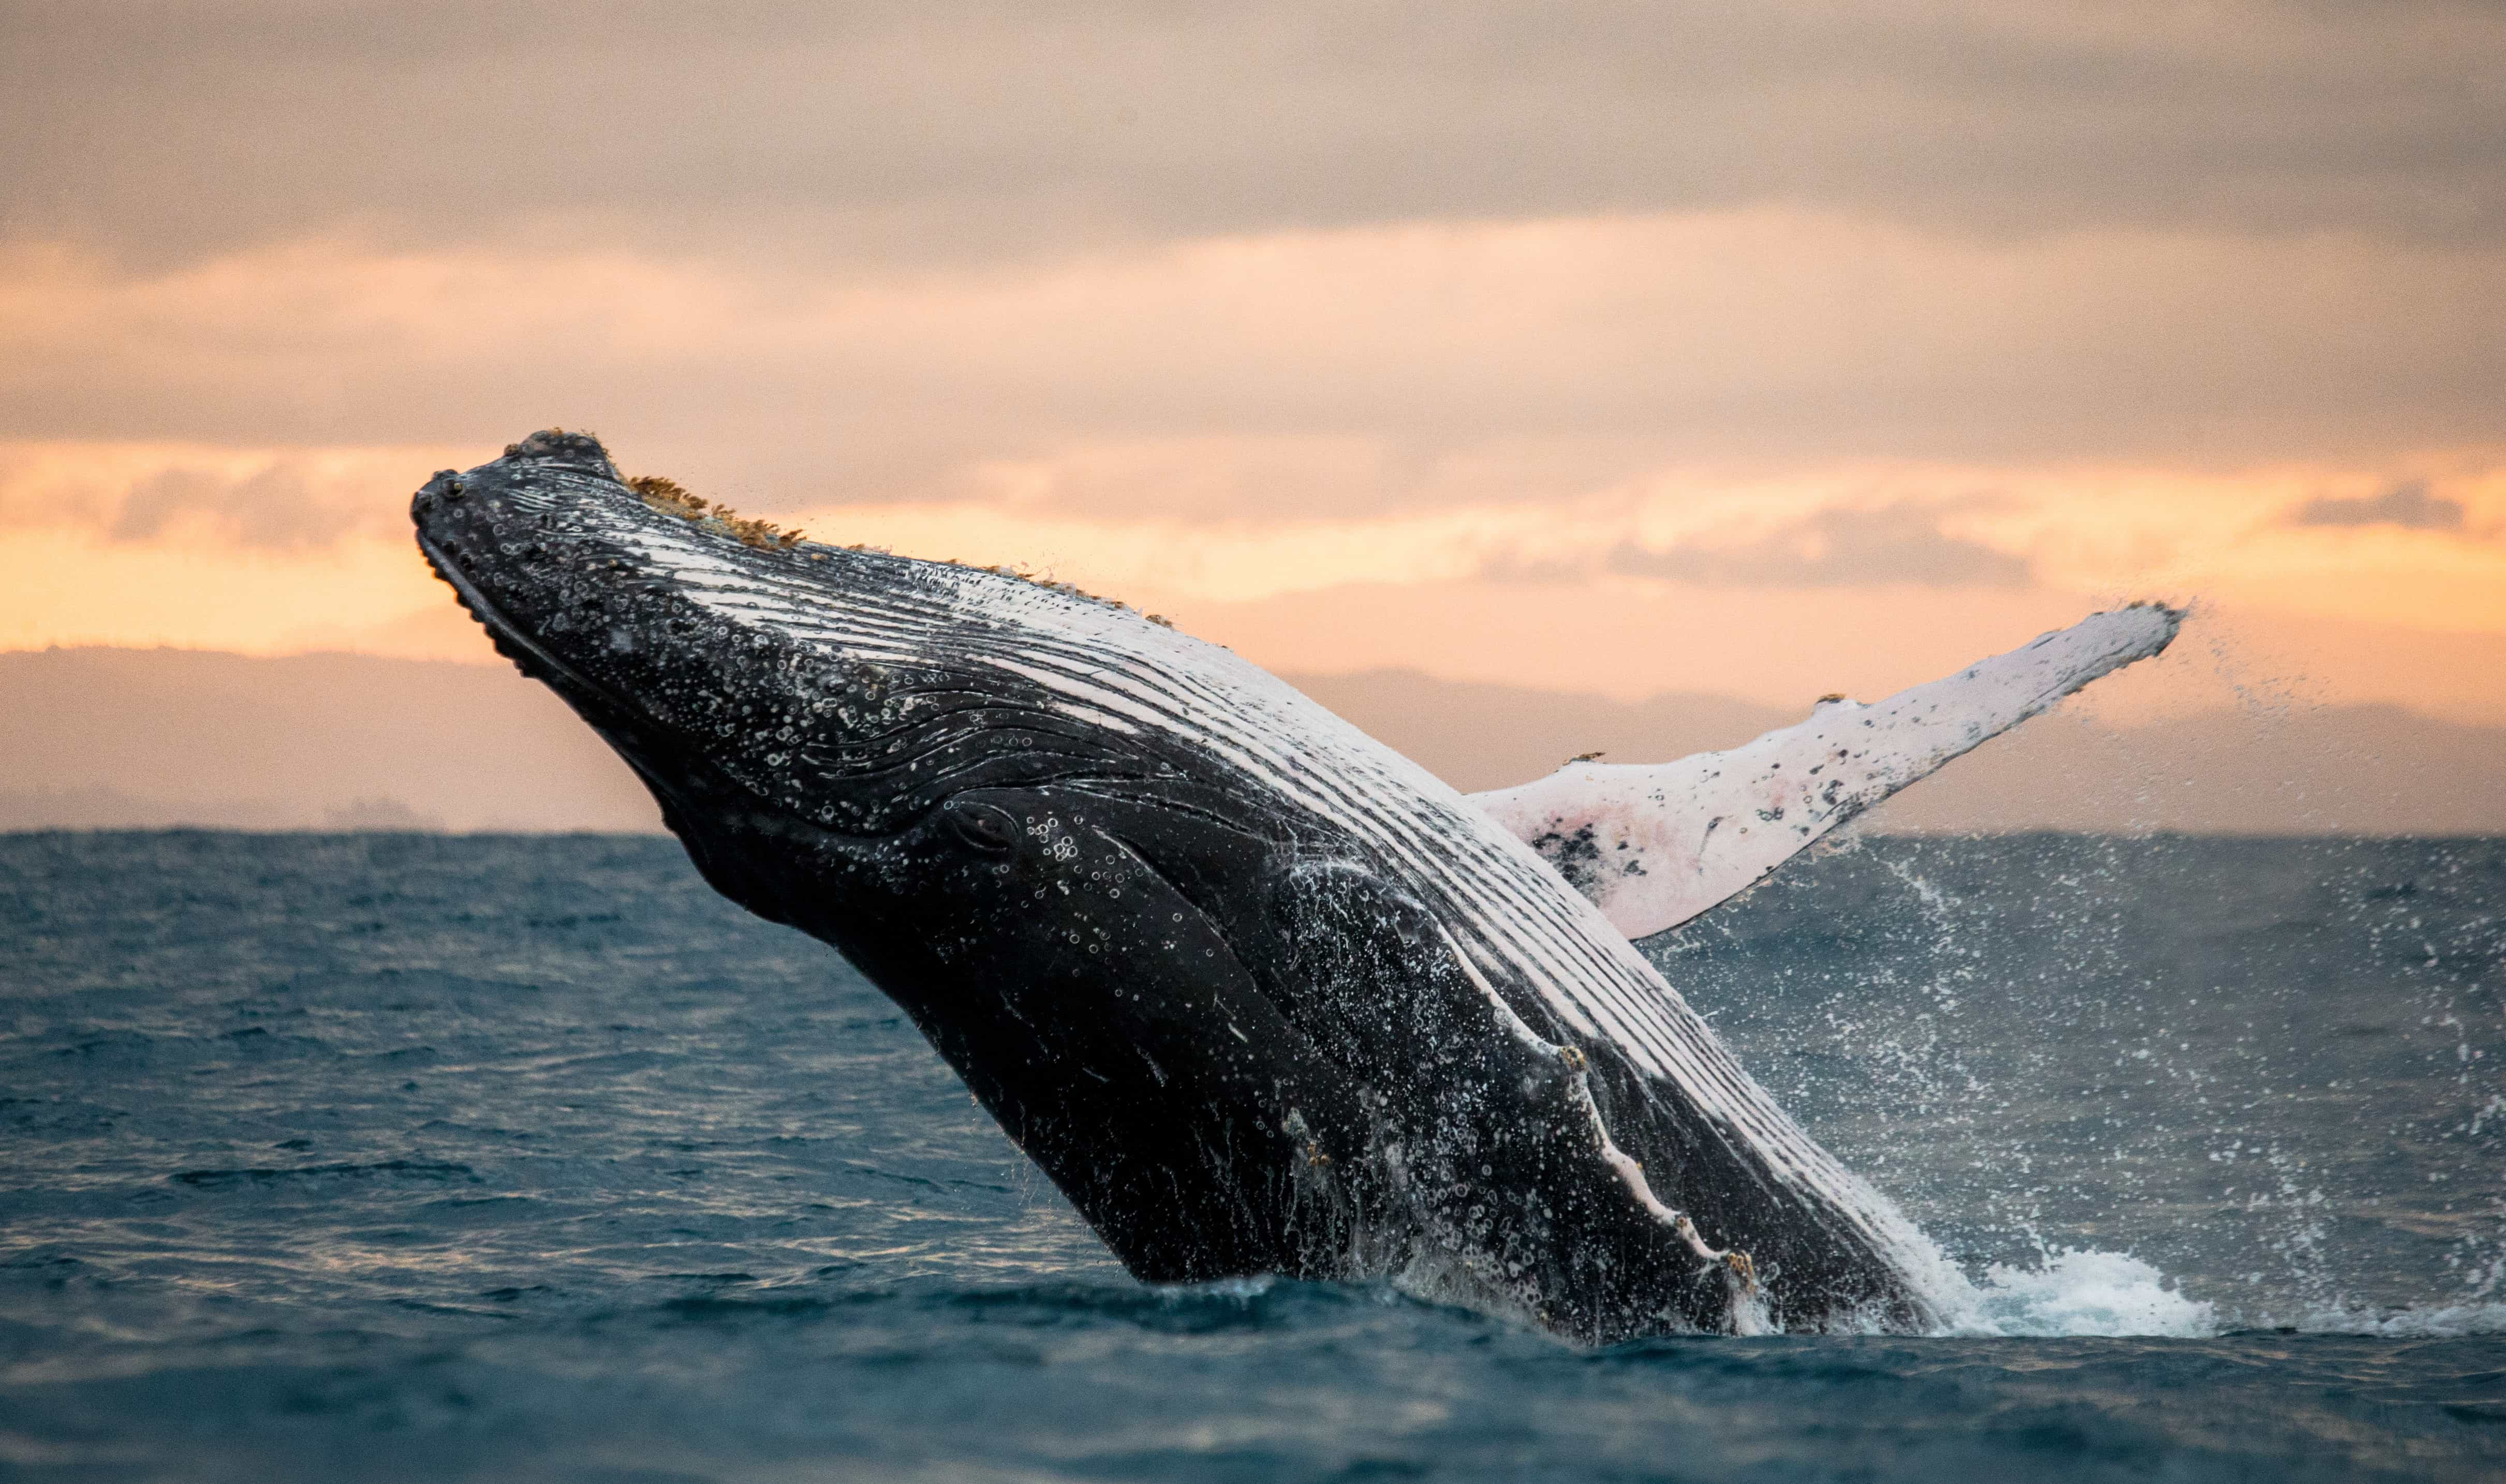 humpback whale breaching at sunrise